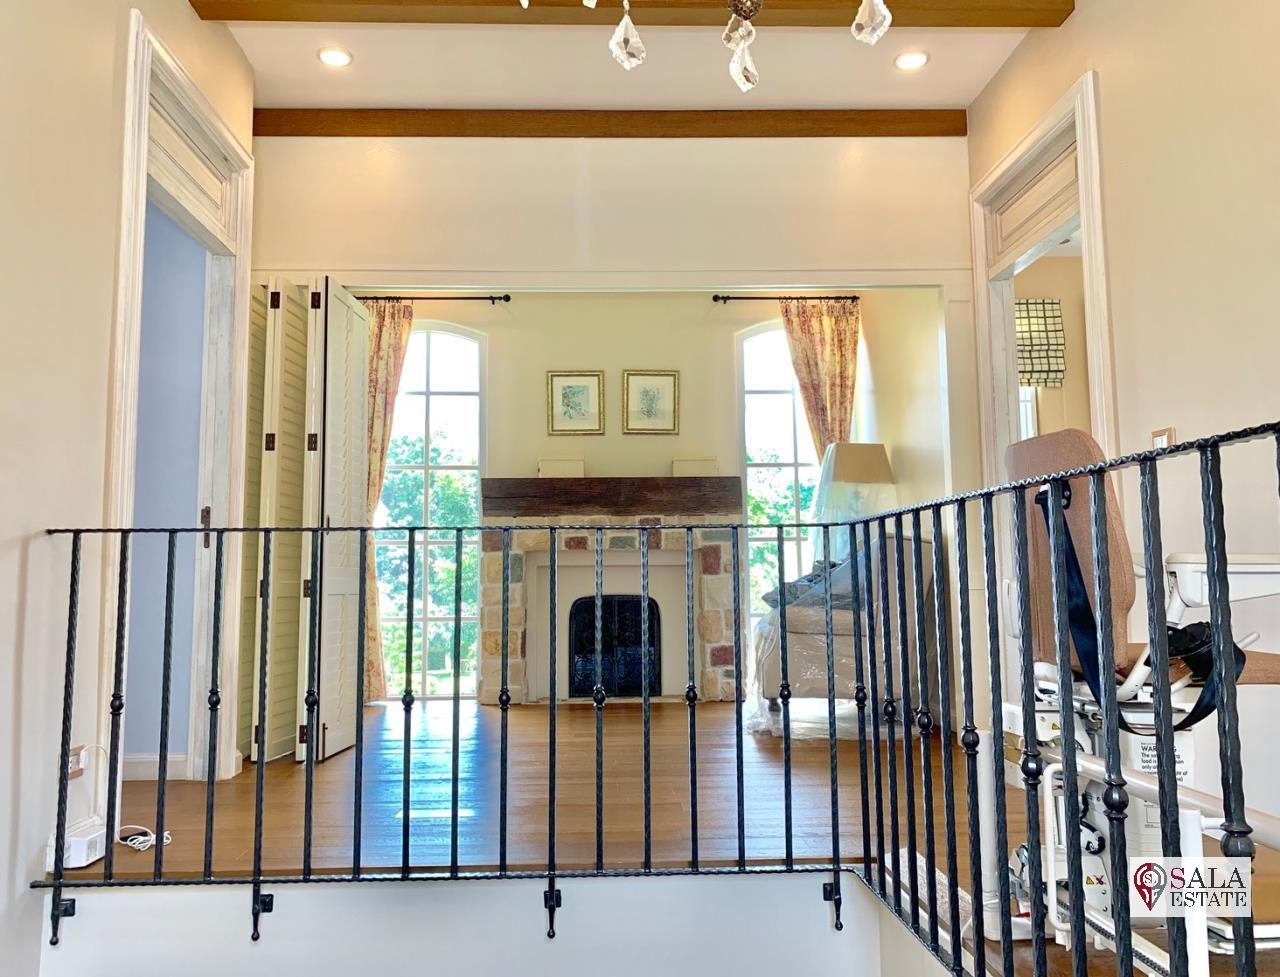 SALA ESTATE Agency's (FOR SALE ONLY 18 MB) PRIVATE LUXURY HOUSE IN KHAO YAI - MAGNOLIAS FRENCH COUNTRY KHAO YAI 10